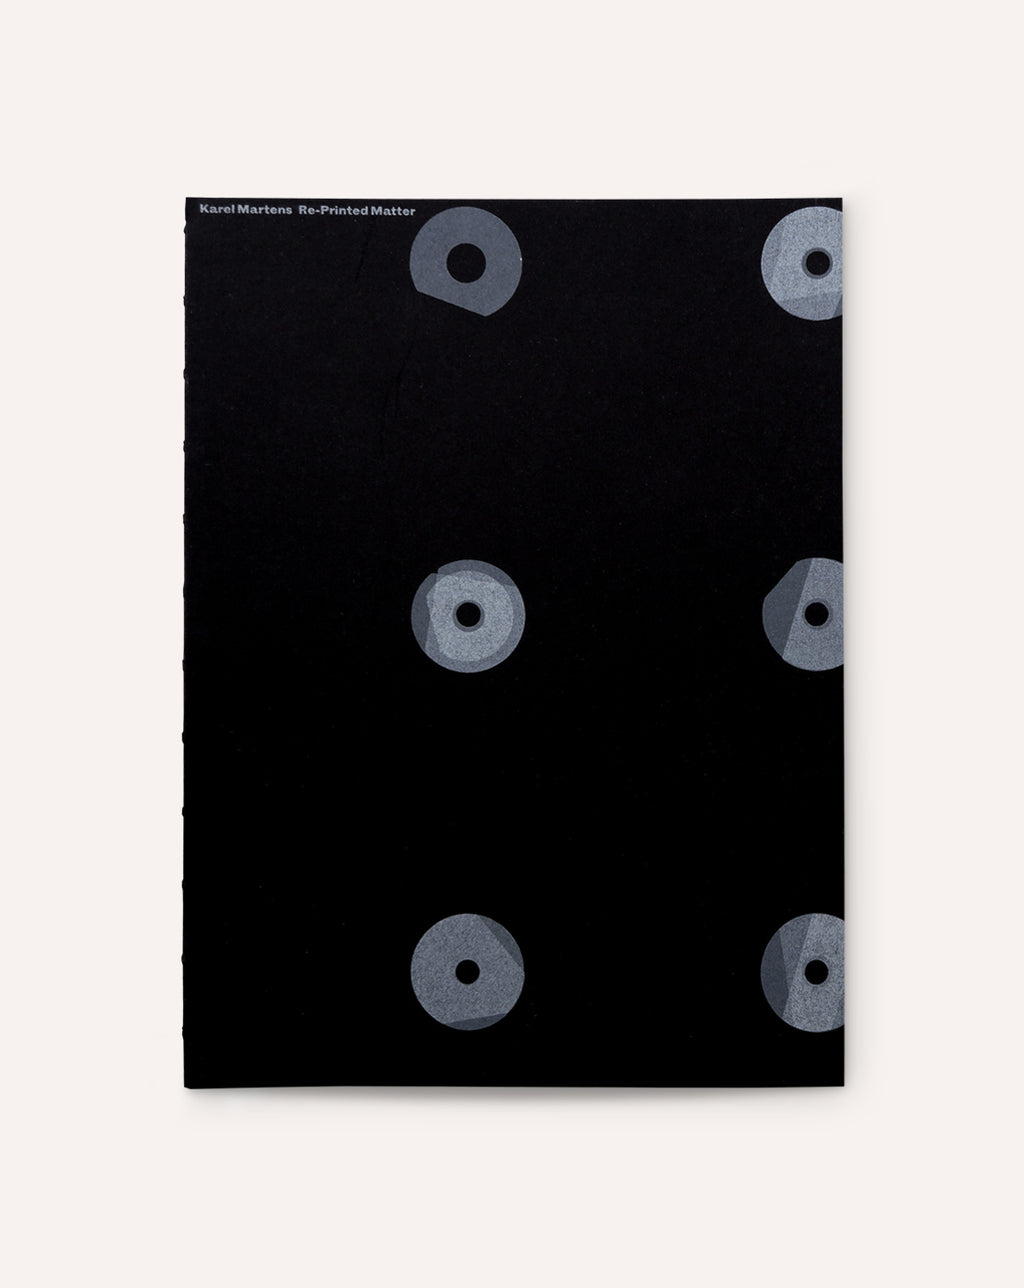 Karel Martens: Re-Printed Matter (Black and White Edition)